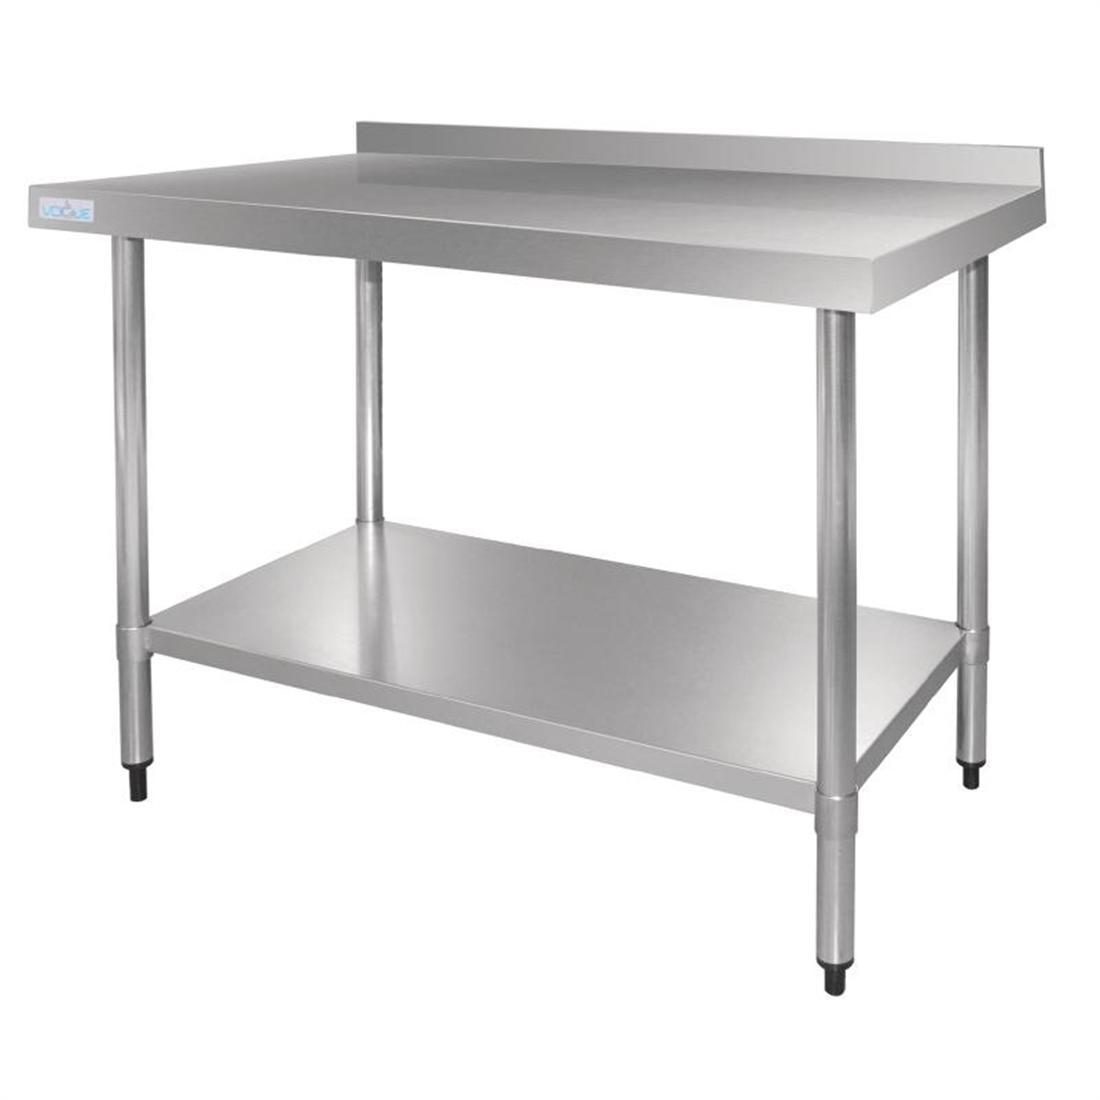 Vogue Stainless Steel Table with Upstand 600mm - Each - GJ505